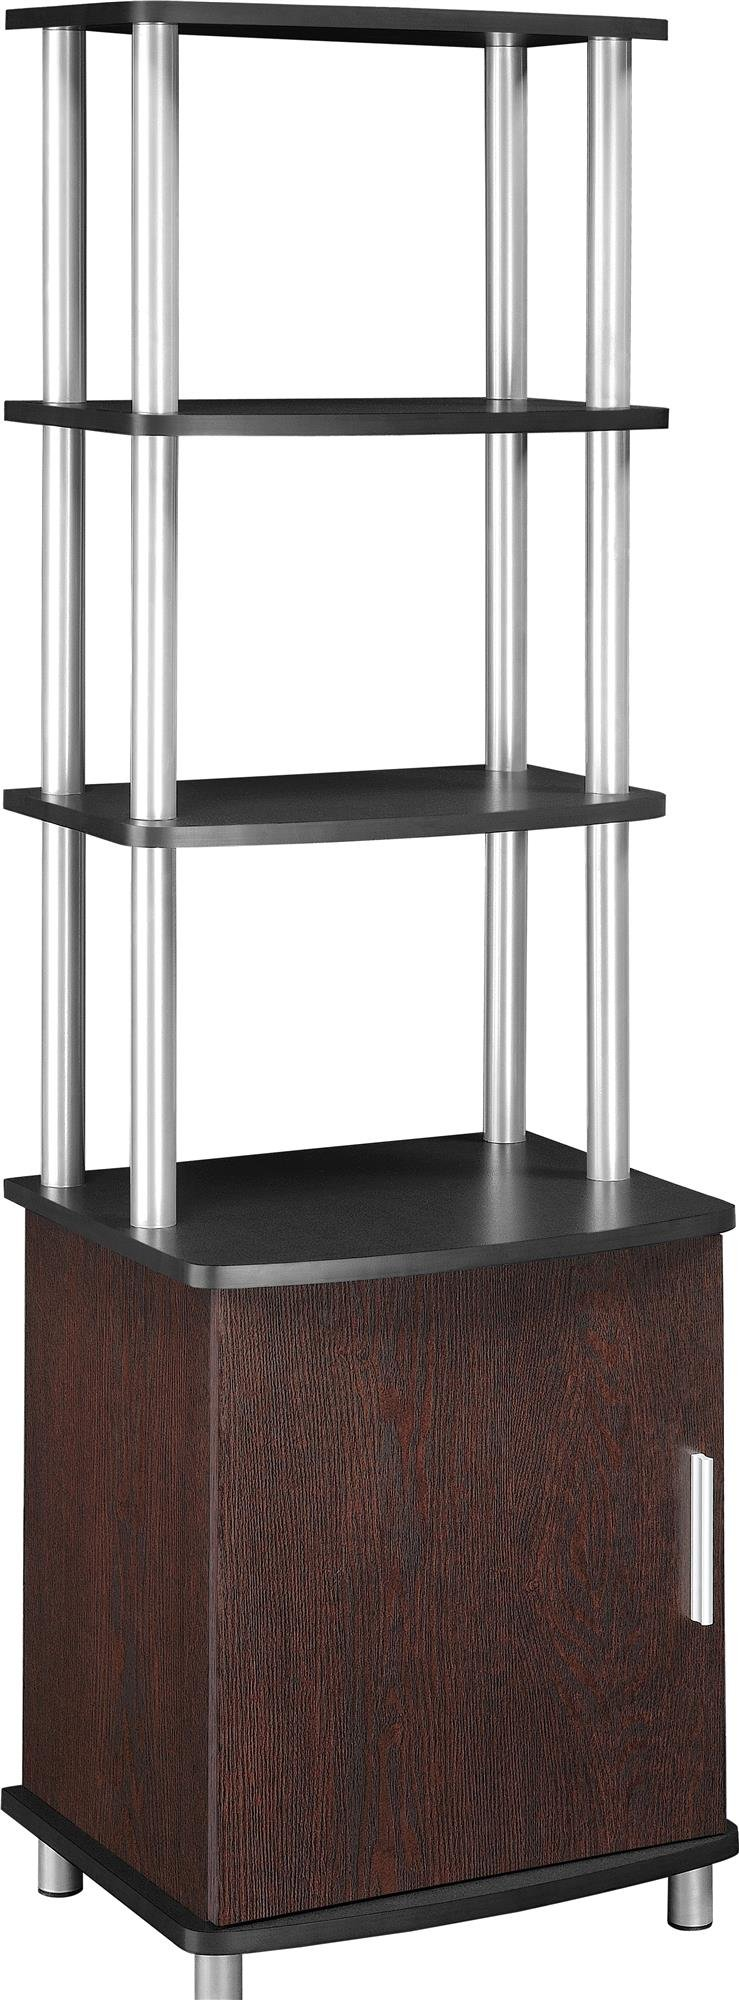 Ameriwood Home Carson Audio Stand, Cherry/Black by Ameriwood Home